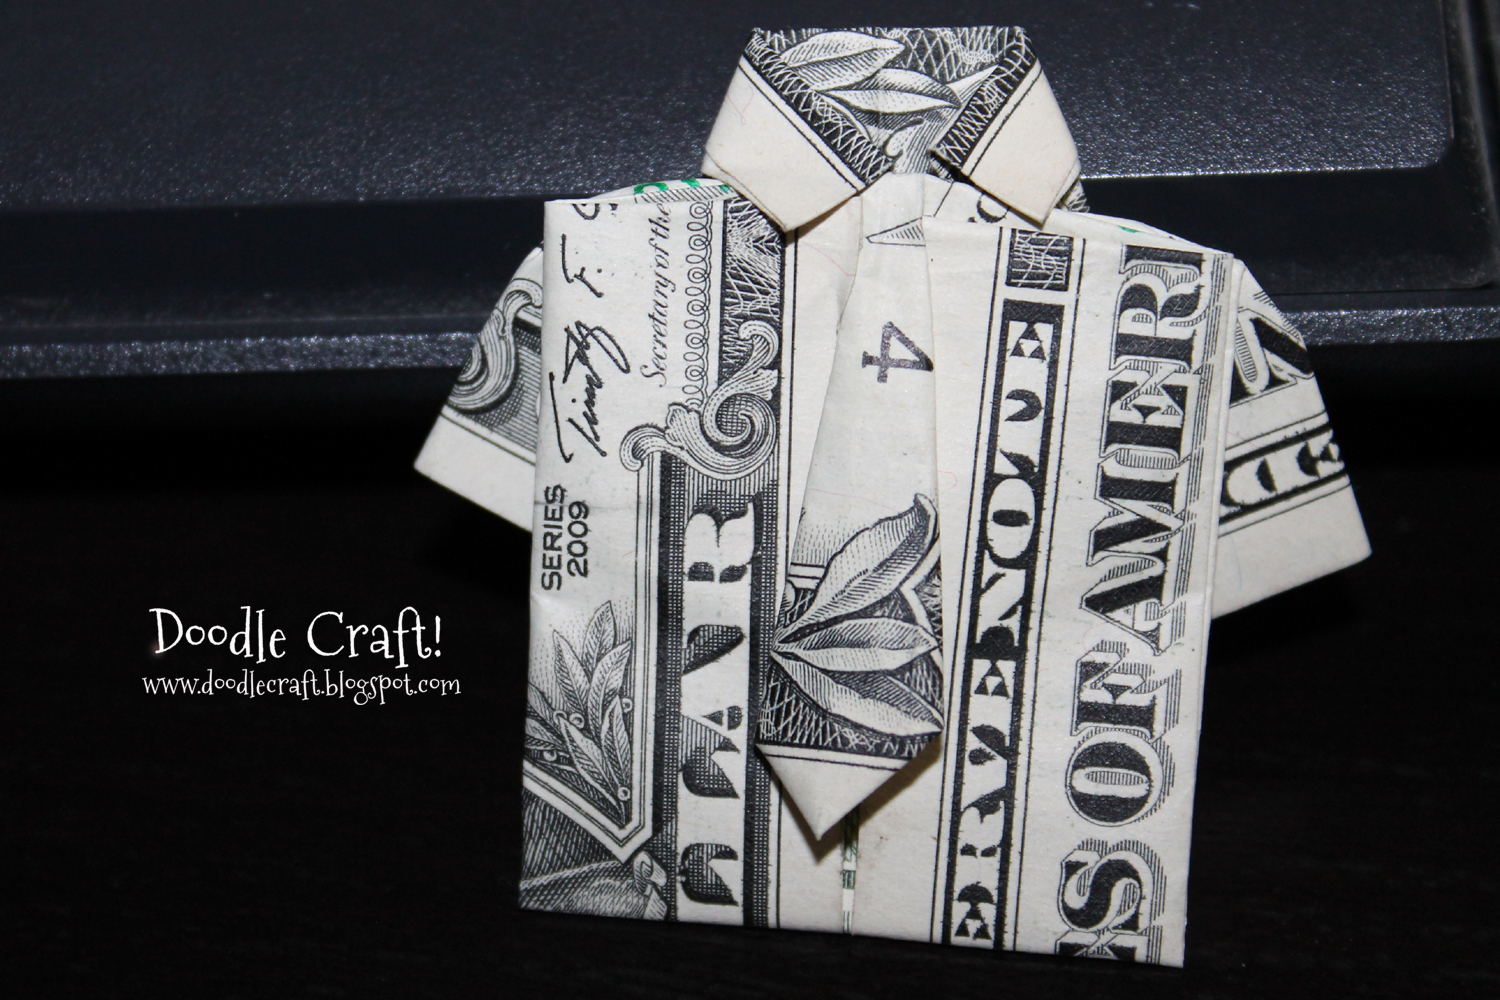 Doodlecraft: Origami Money folding: Shirt and Tie! - photo#18